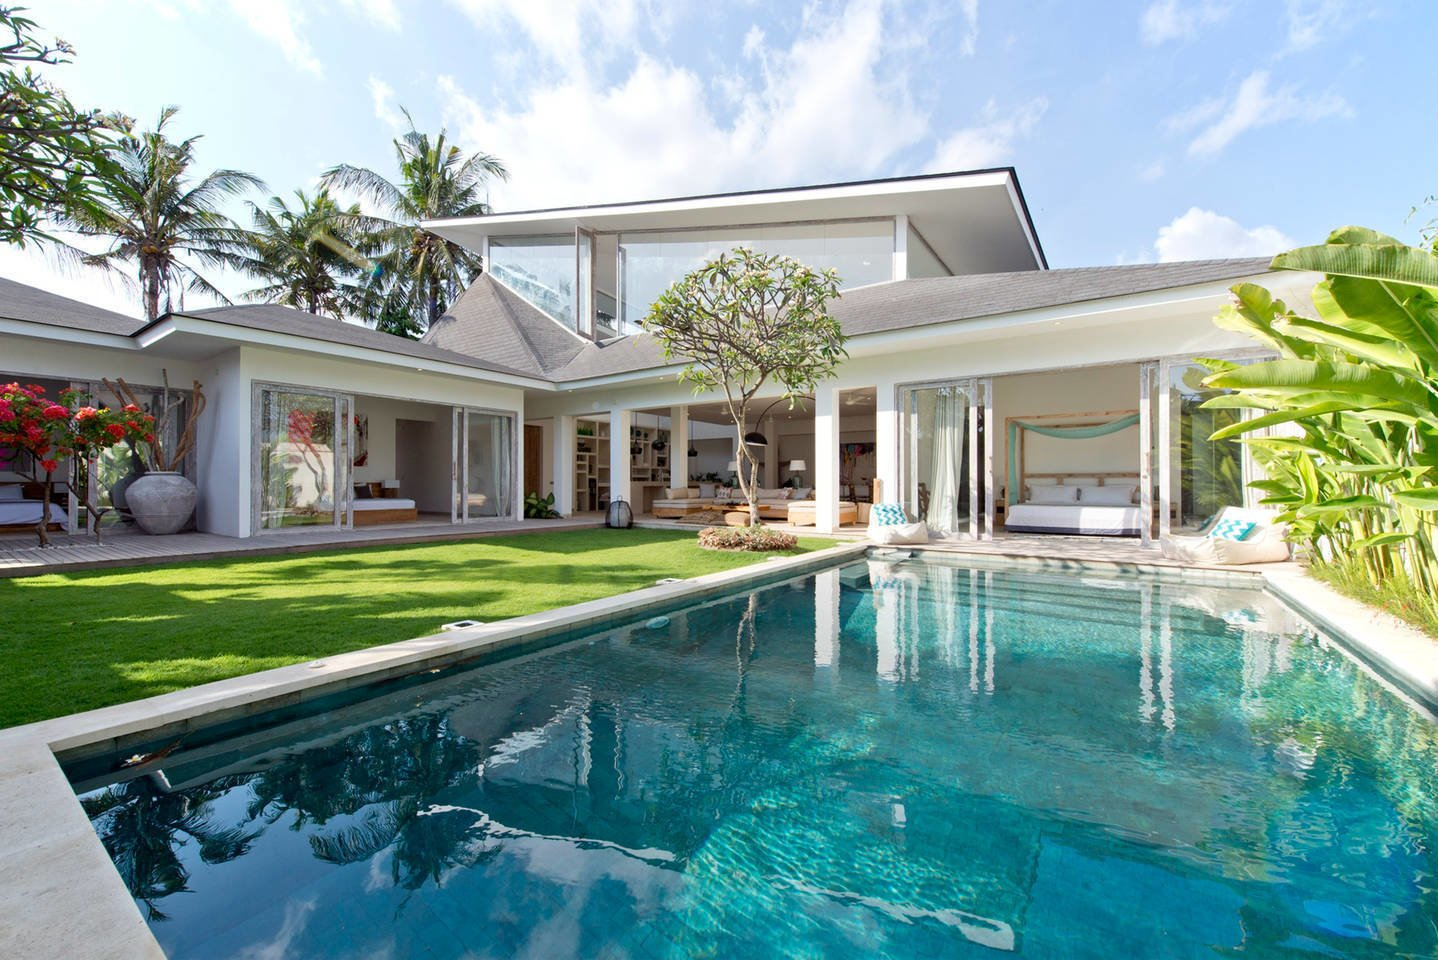 Photo 1 of 11 in Connect With Bali's Tropical Landscape at One of these Modern Villas